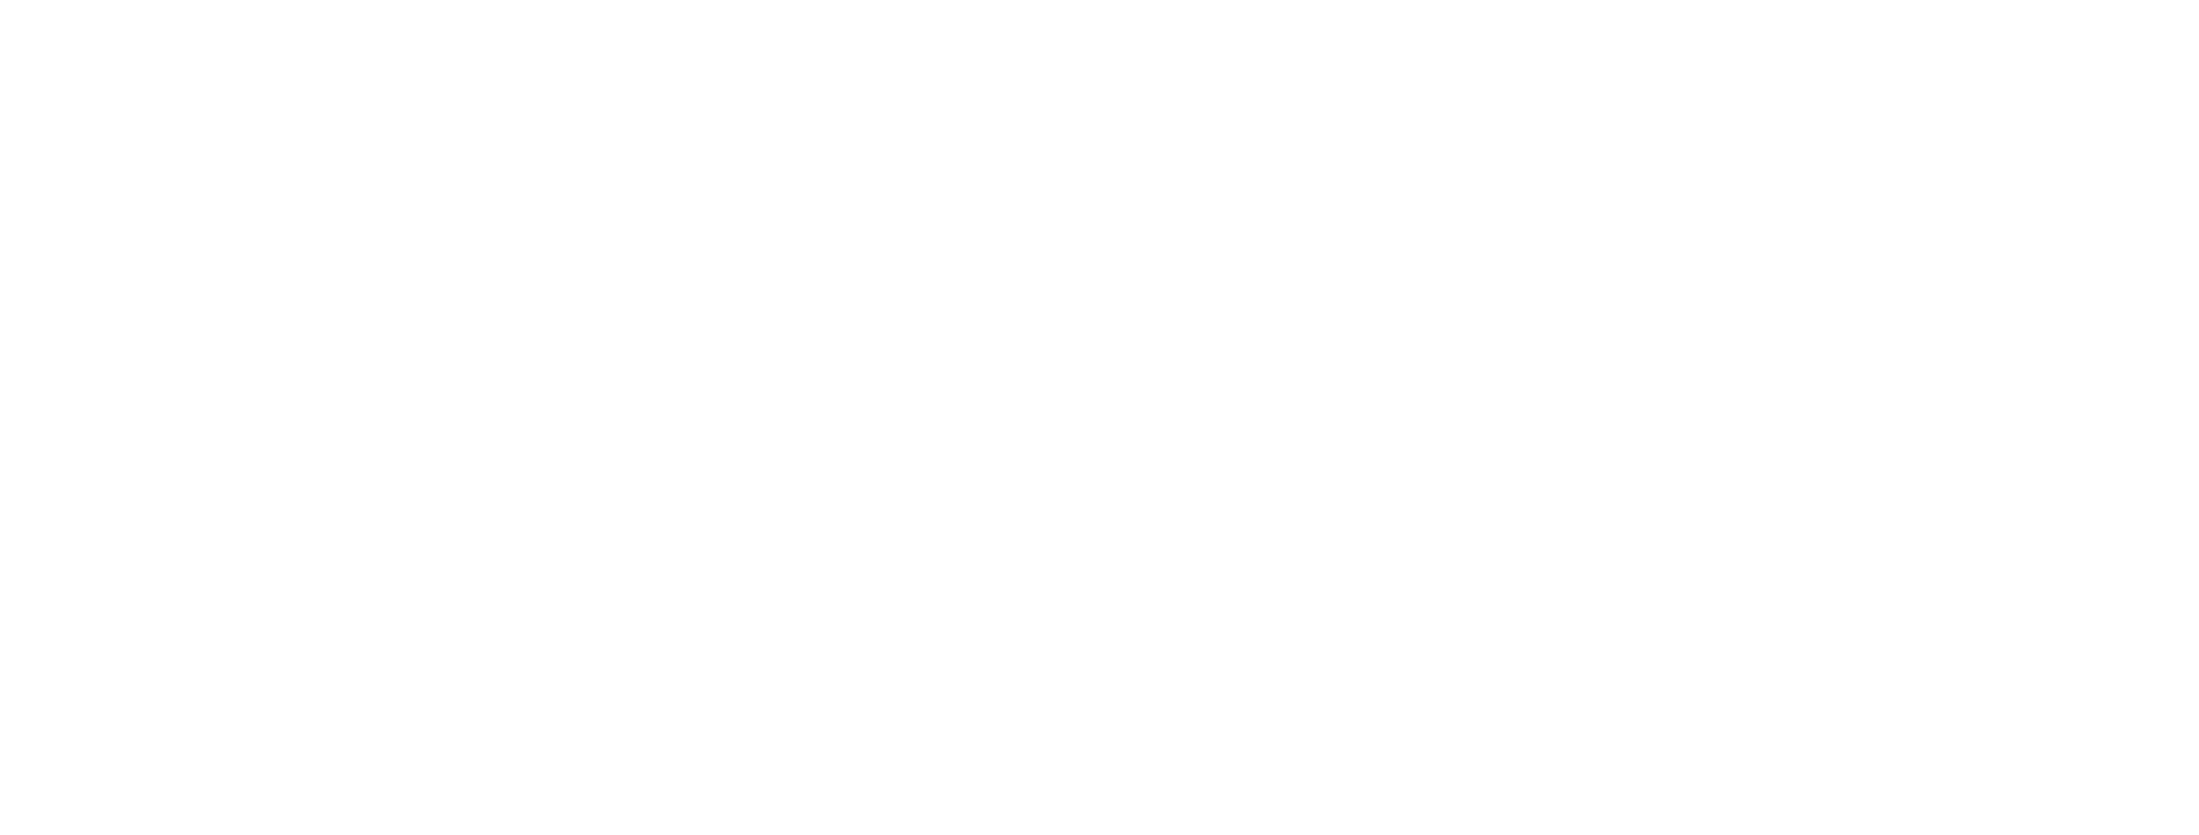 Mathison's Muse